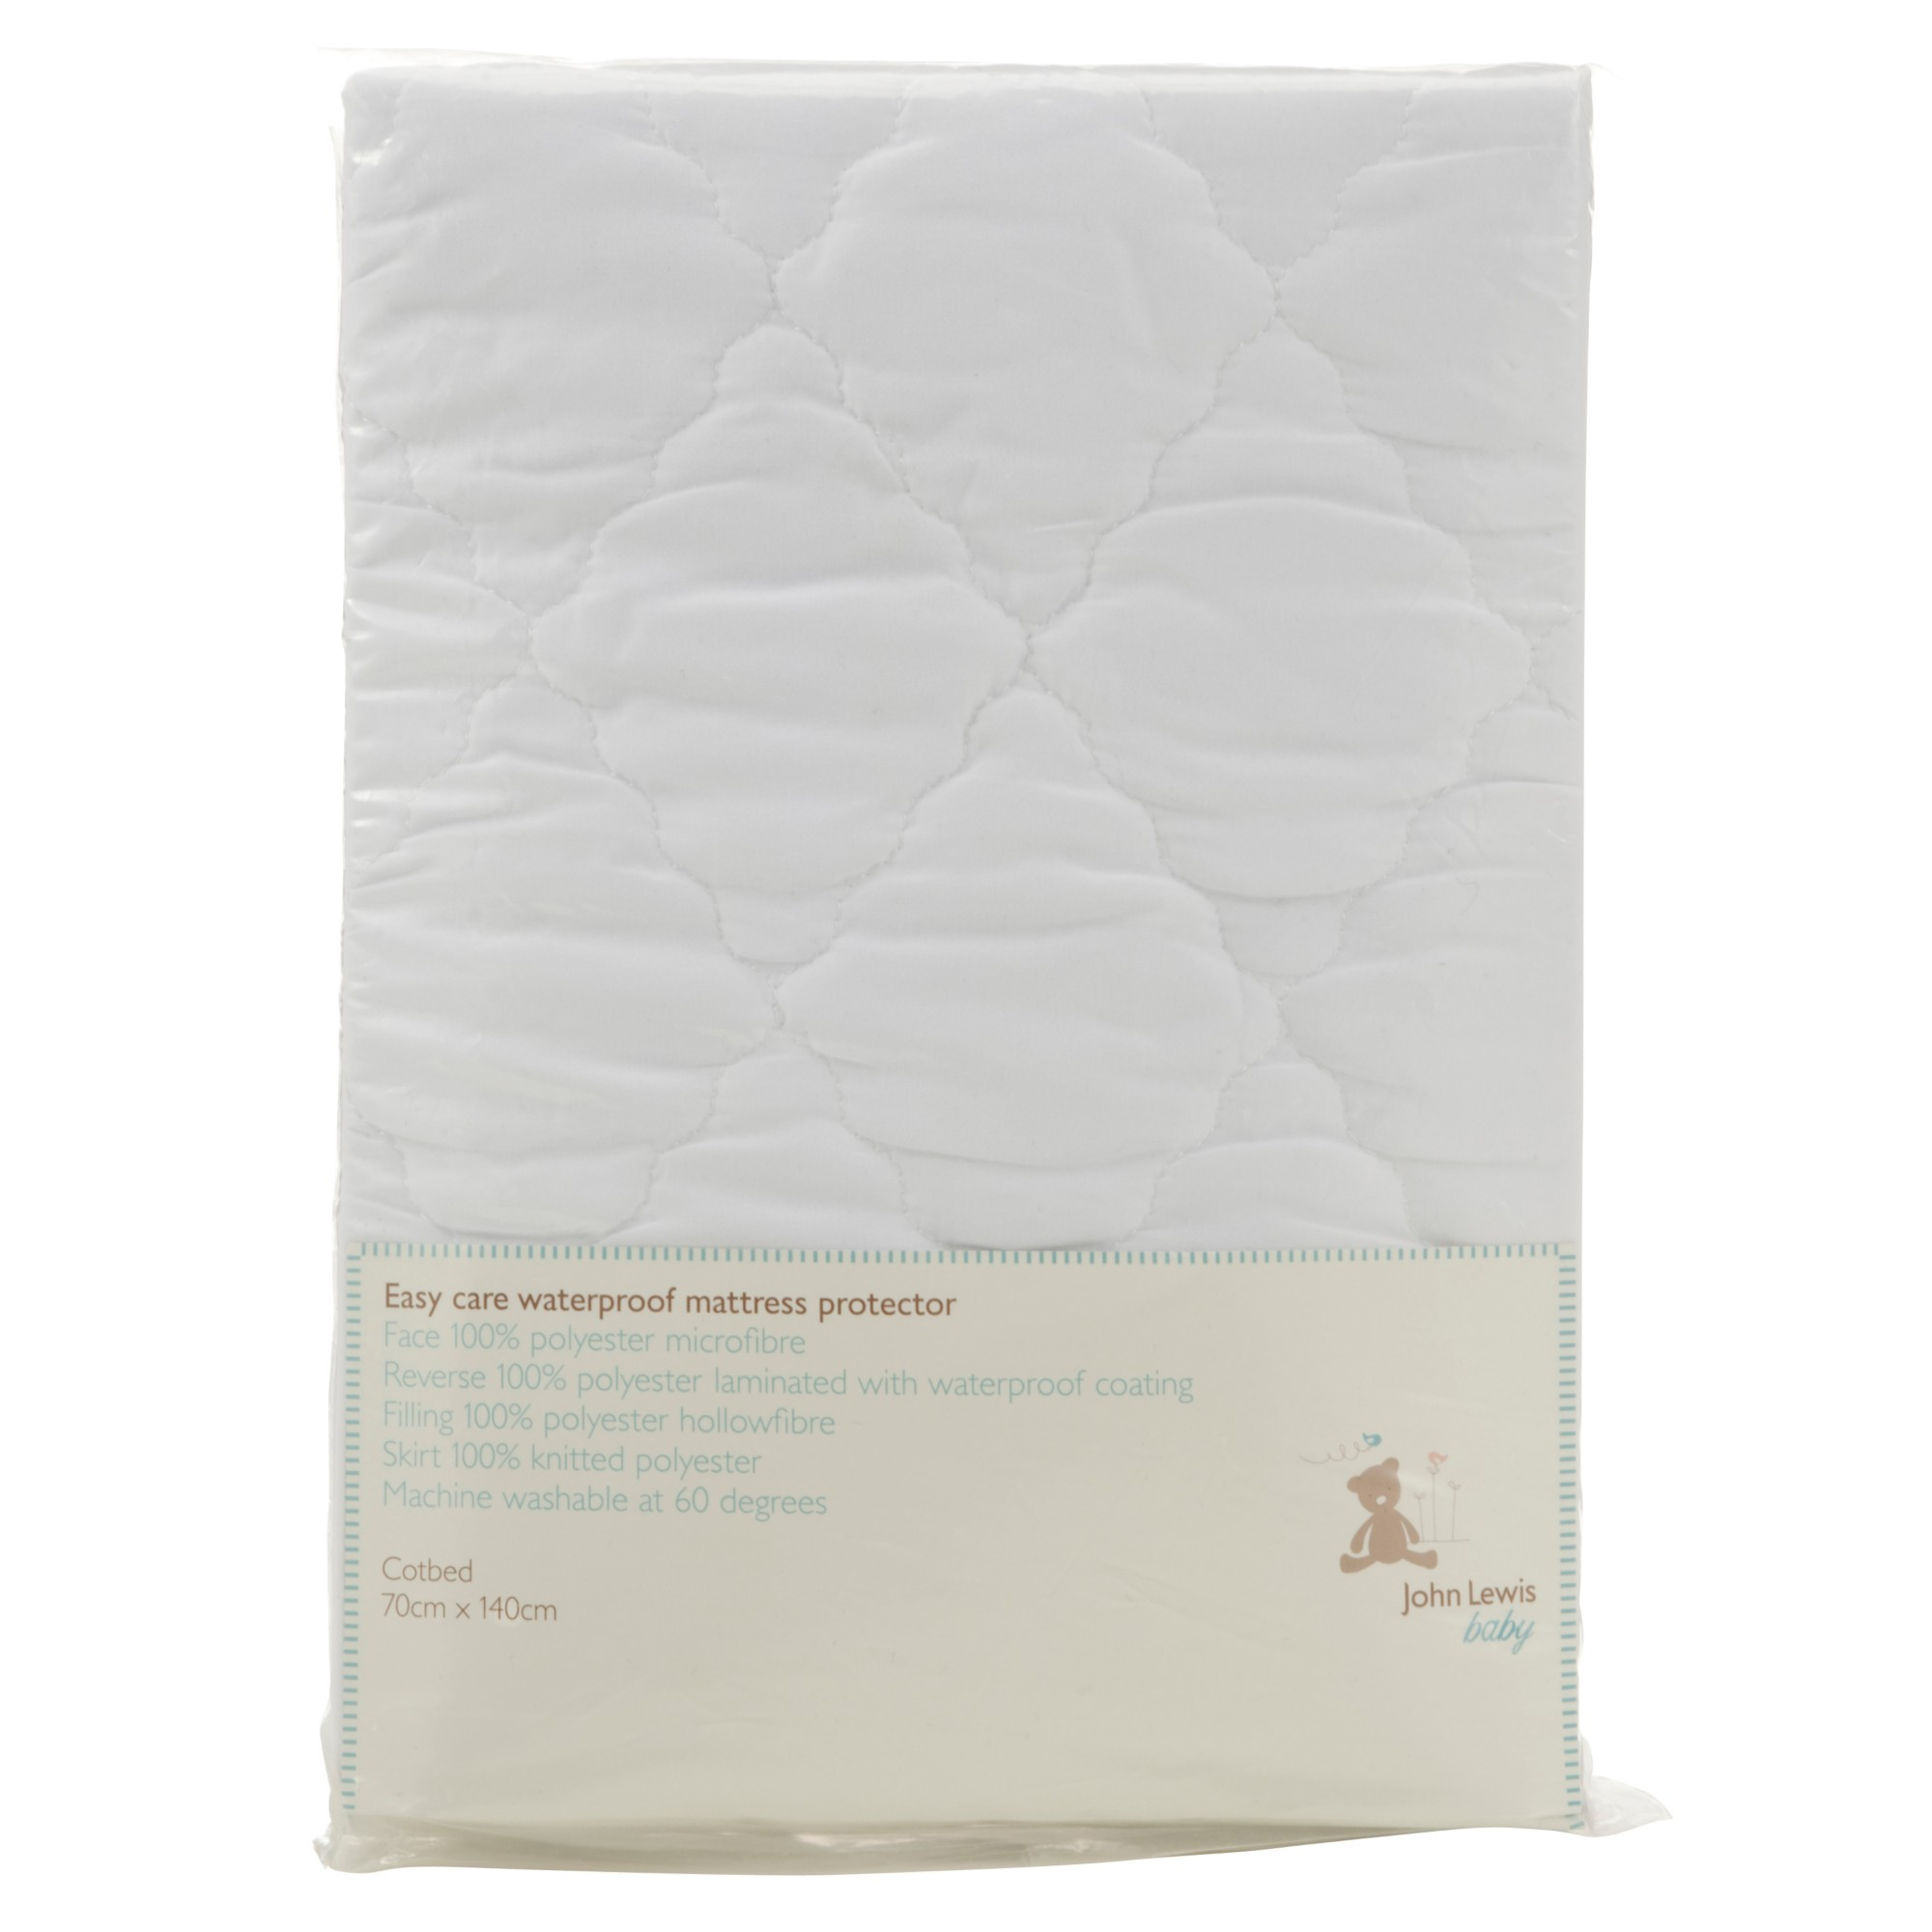 John Lewis Baby's Easy Care Waterproof Cotbed Mattress Protector